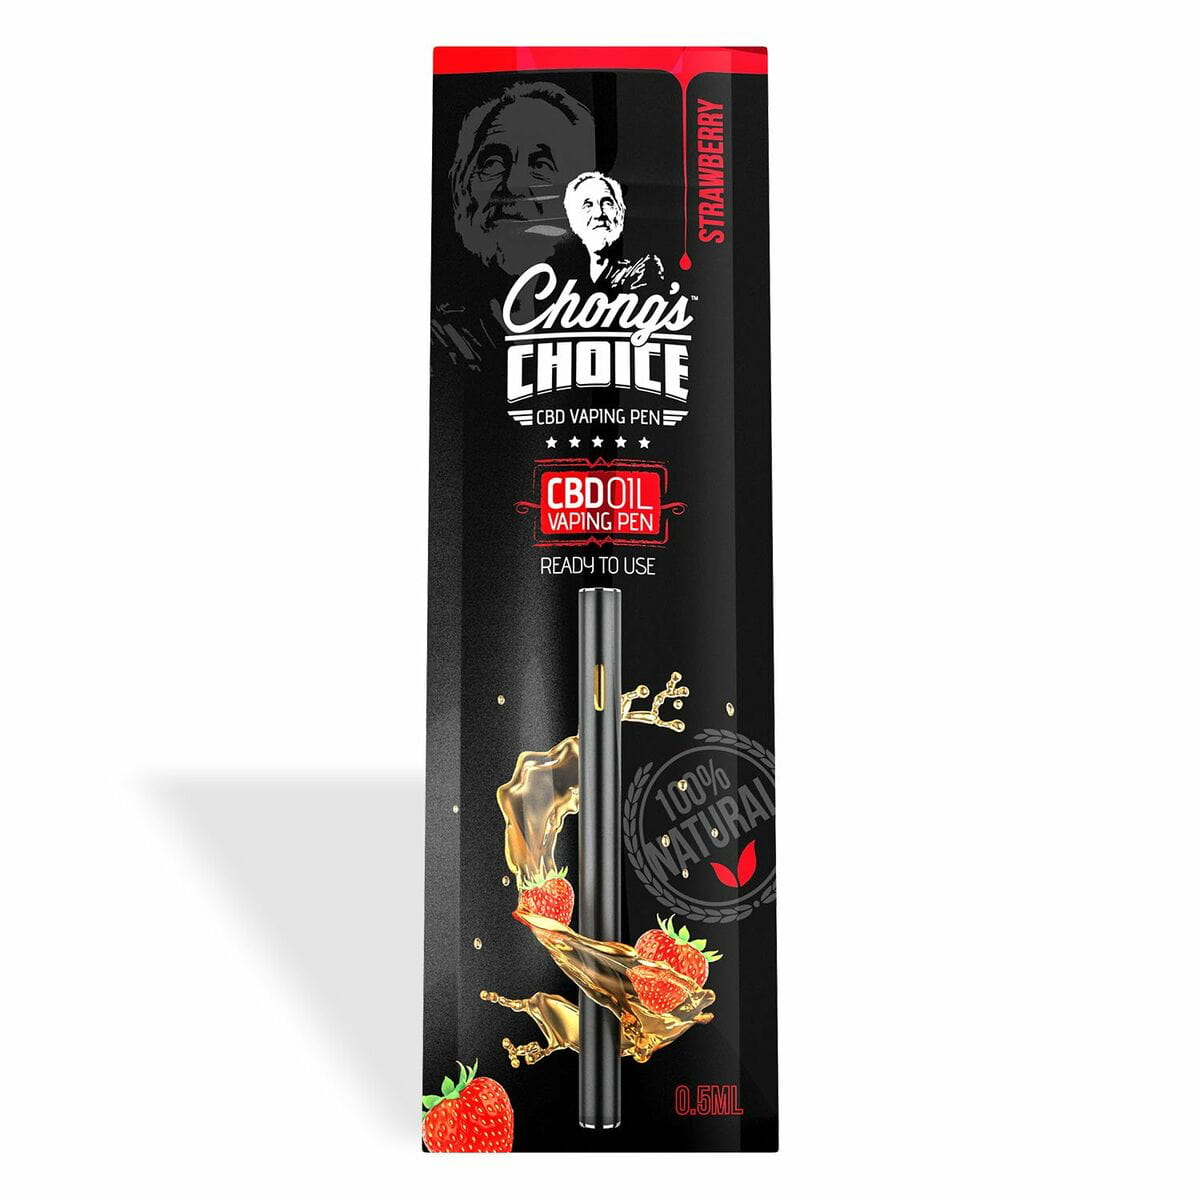 chong-s-choice-vaping-pen-strawberry-thc-free-0-25mg-of-cbd